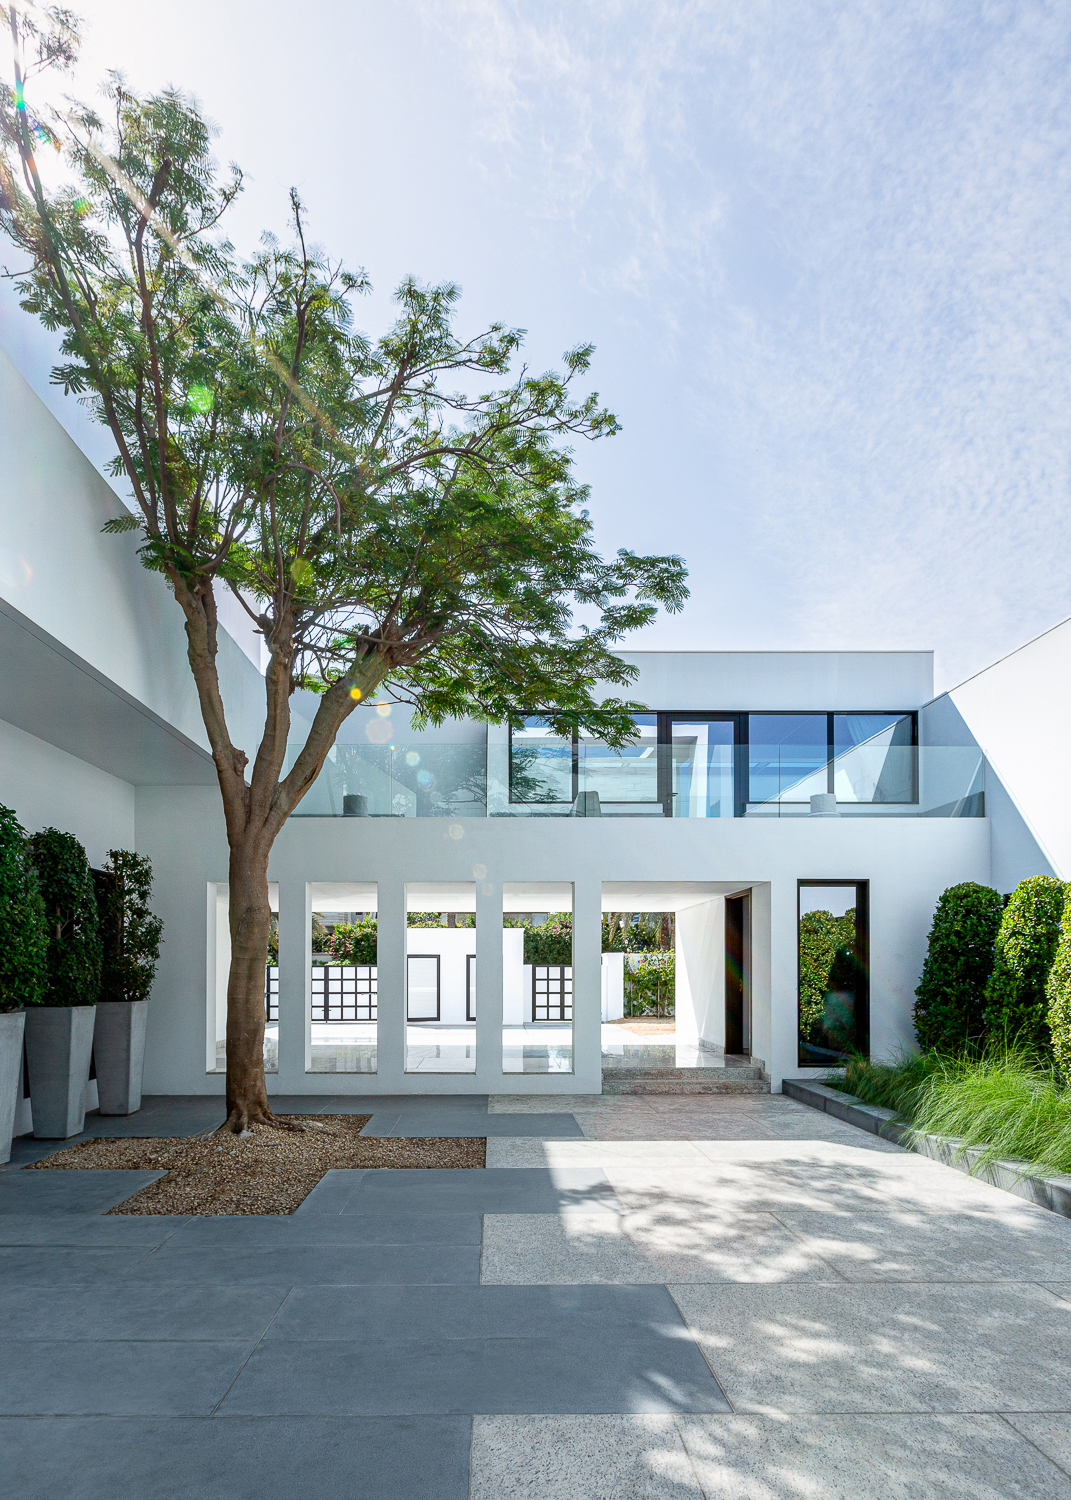 Clean modern high end architecture, courtyard in Dubai Villa by Bay Area Architectural photographer Ella Bessette